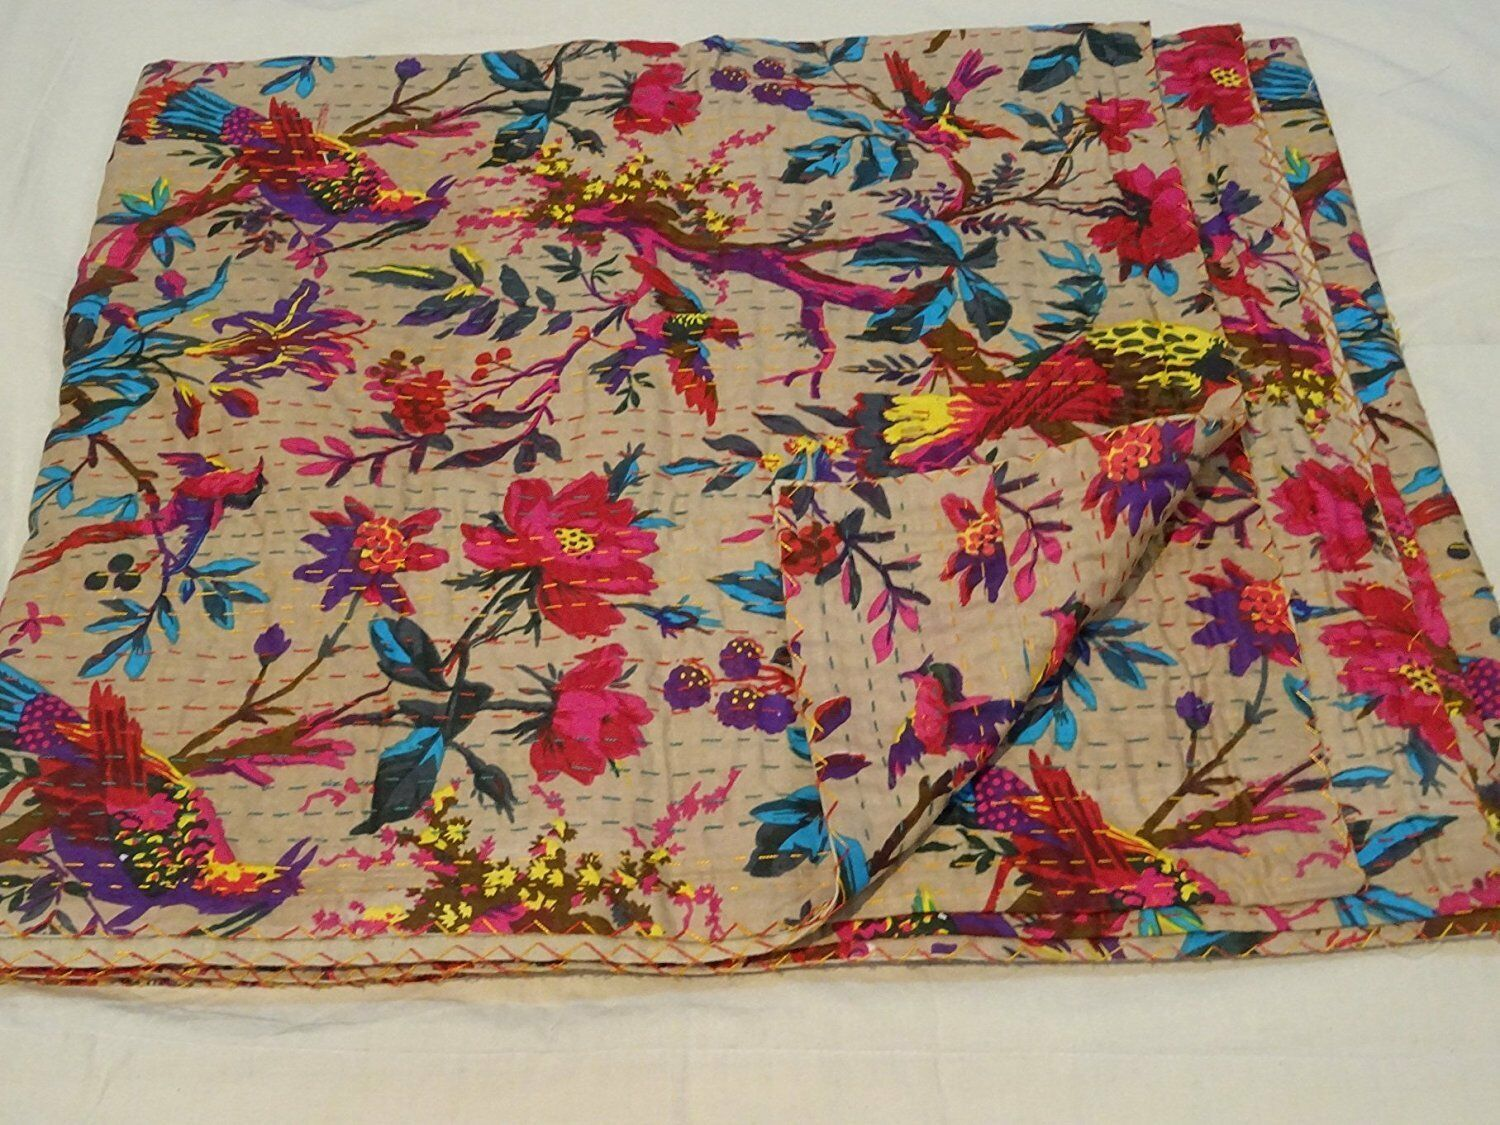 Cotton Bedcover Bedspread Coverlet Quilt Kantha Quilt Blanket Throw Baby Quilt